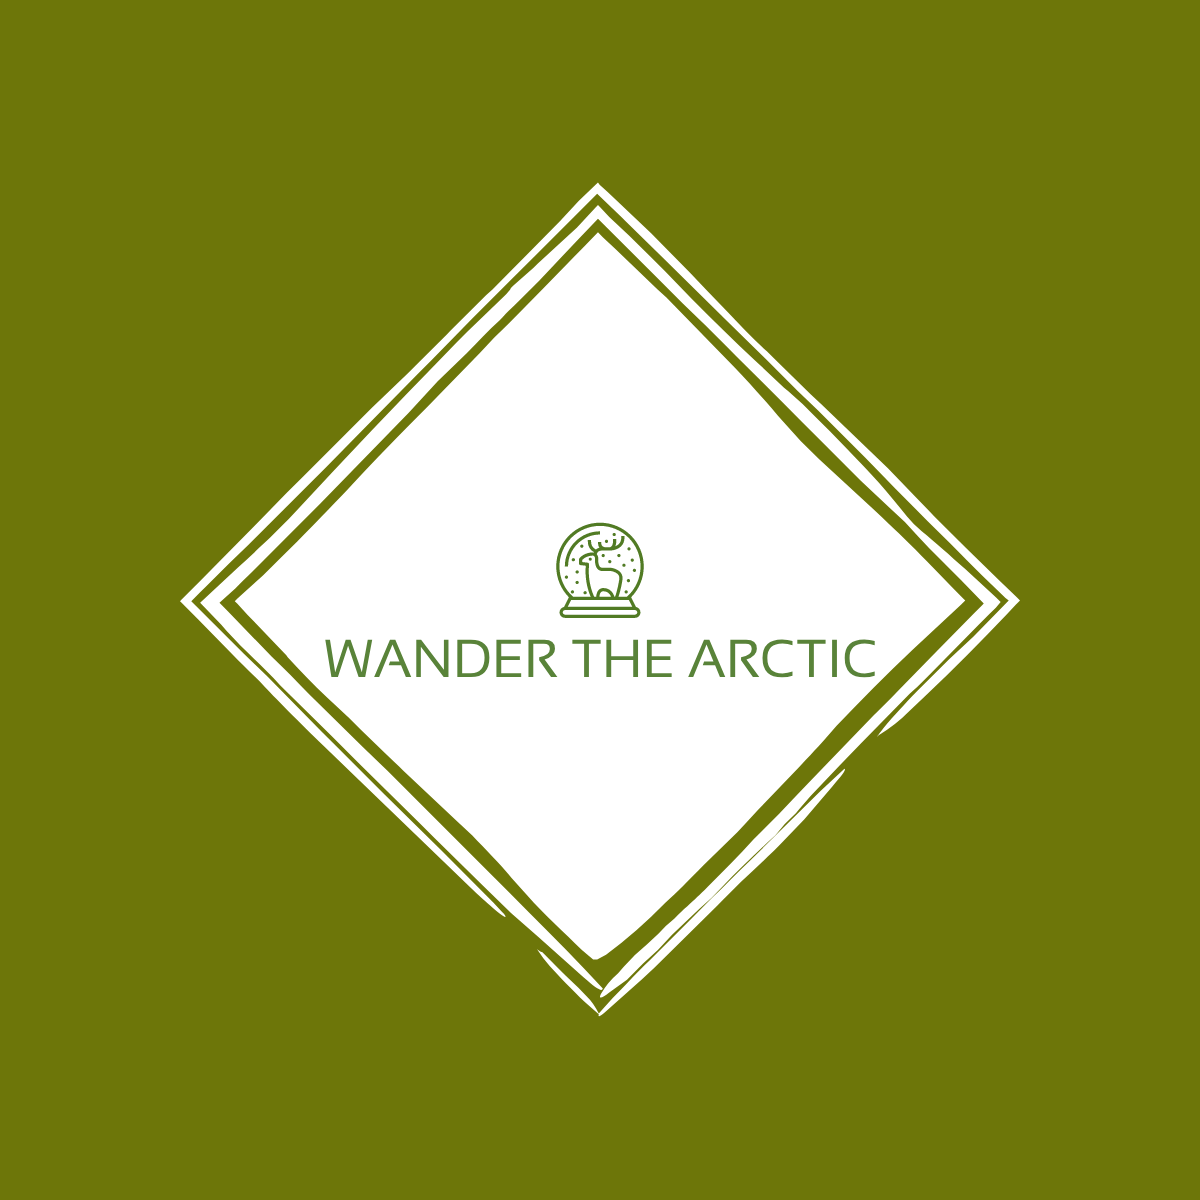 Wander the Arctic